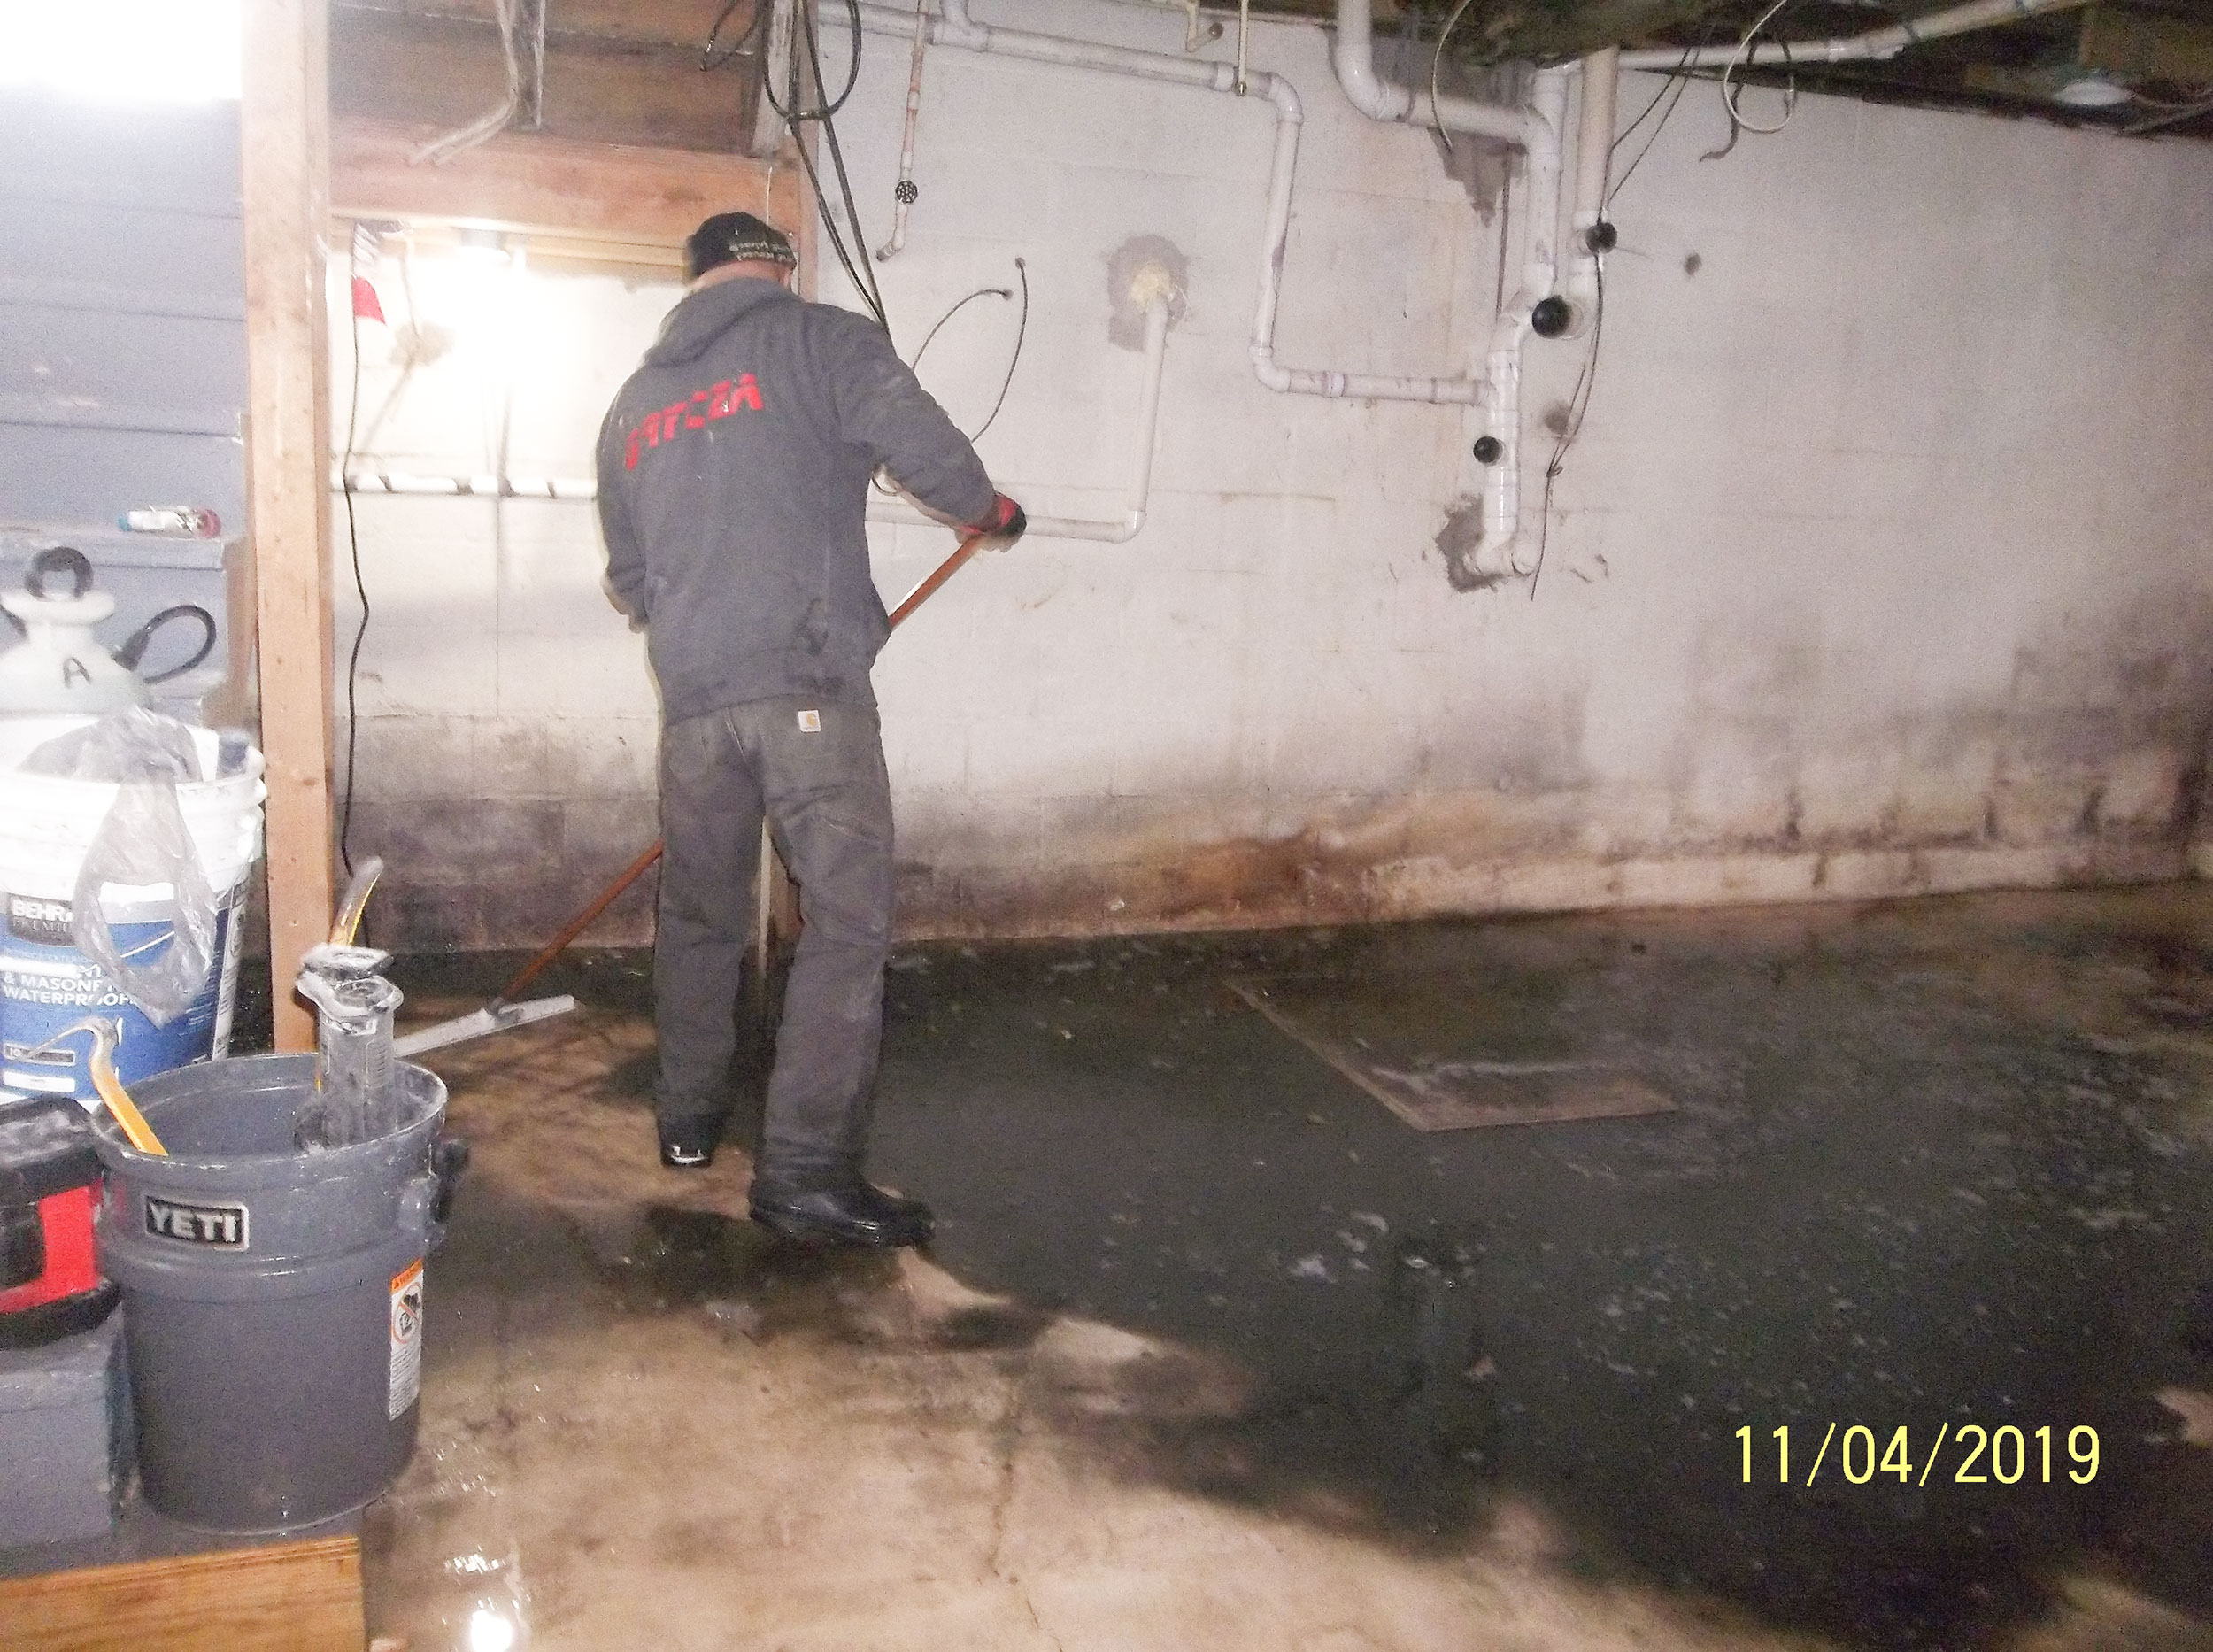 Basement Flood Mold Clean Up Accurate Carpet Cleaning Services